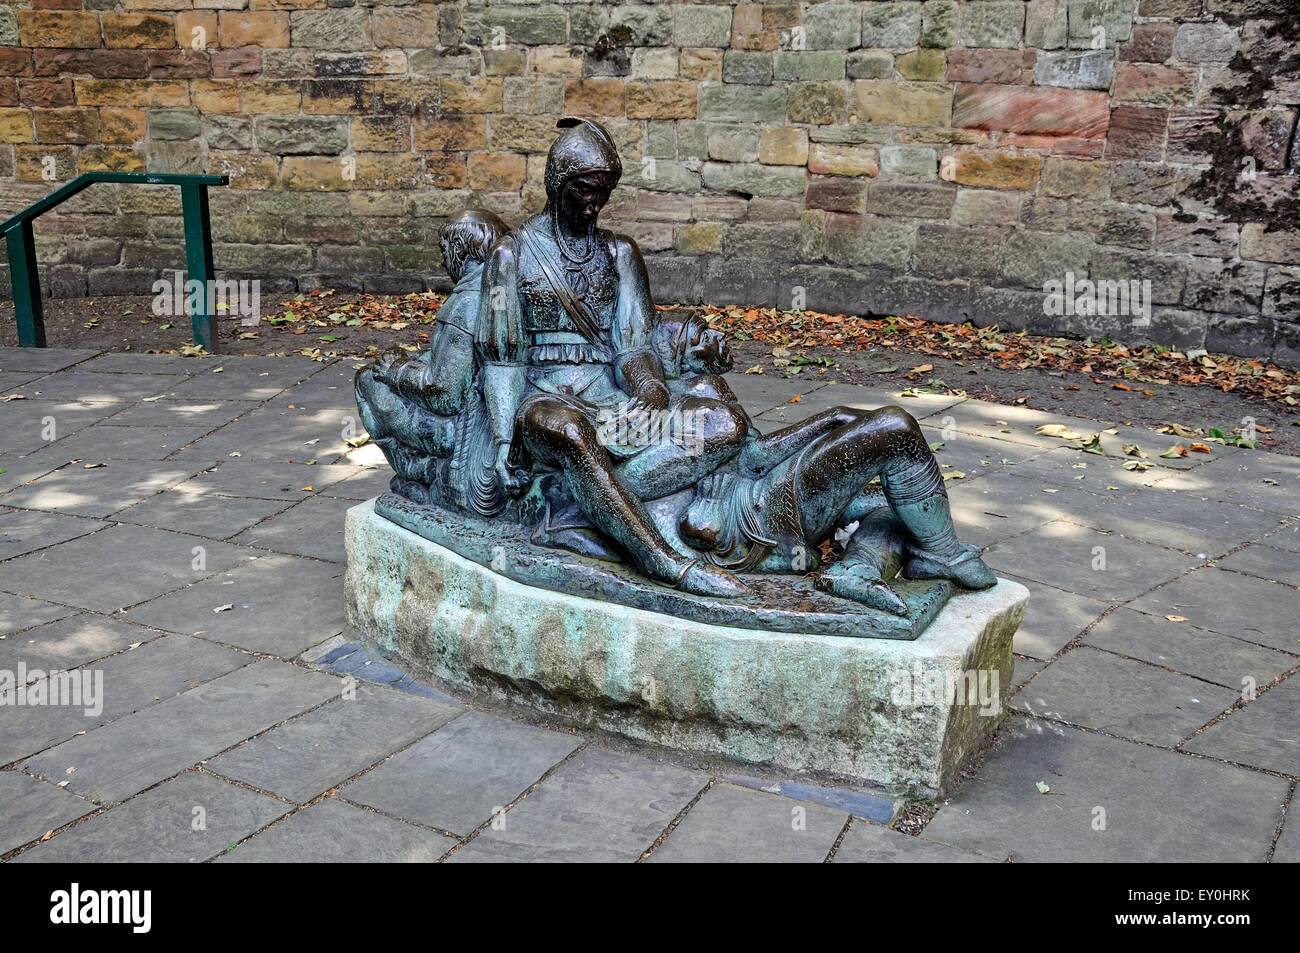 Robin Hood related bronze statue of Friar Tuck, Will Scarlet and Little John outside the castle, Nottingham, England, - Stock Image